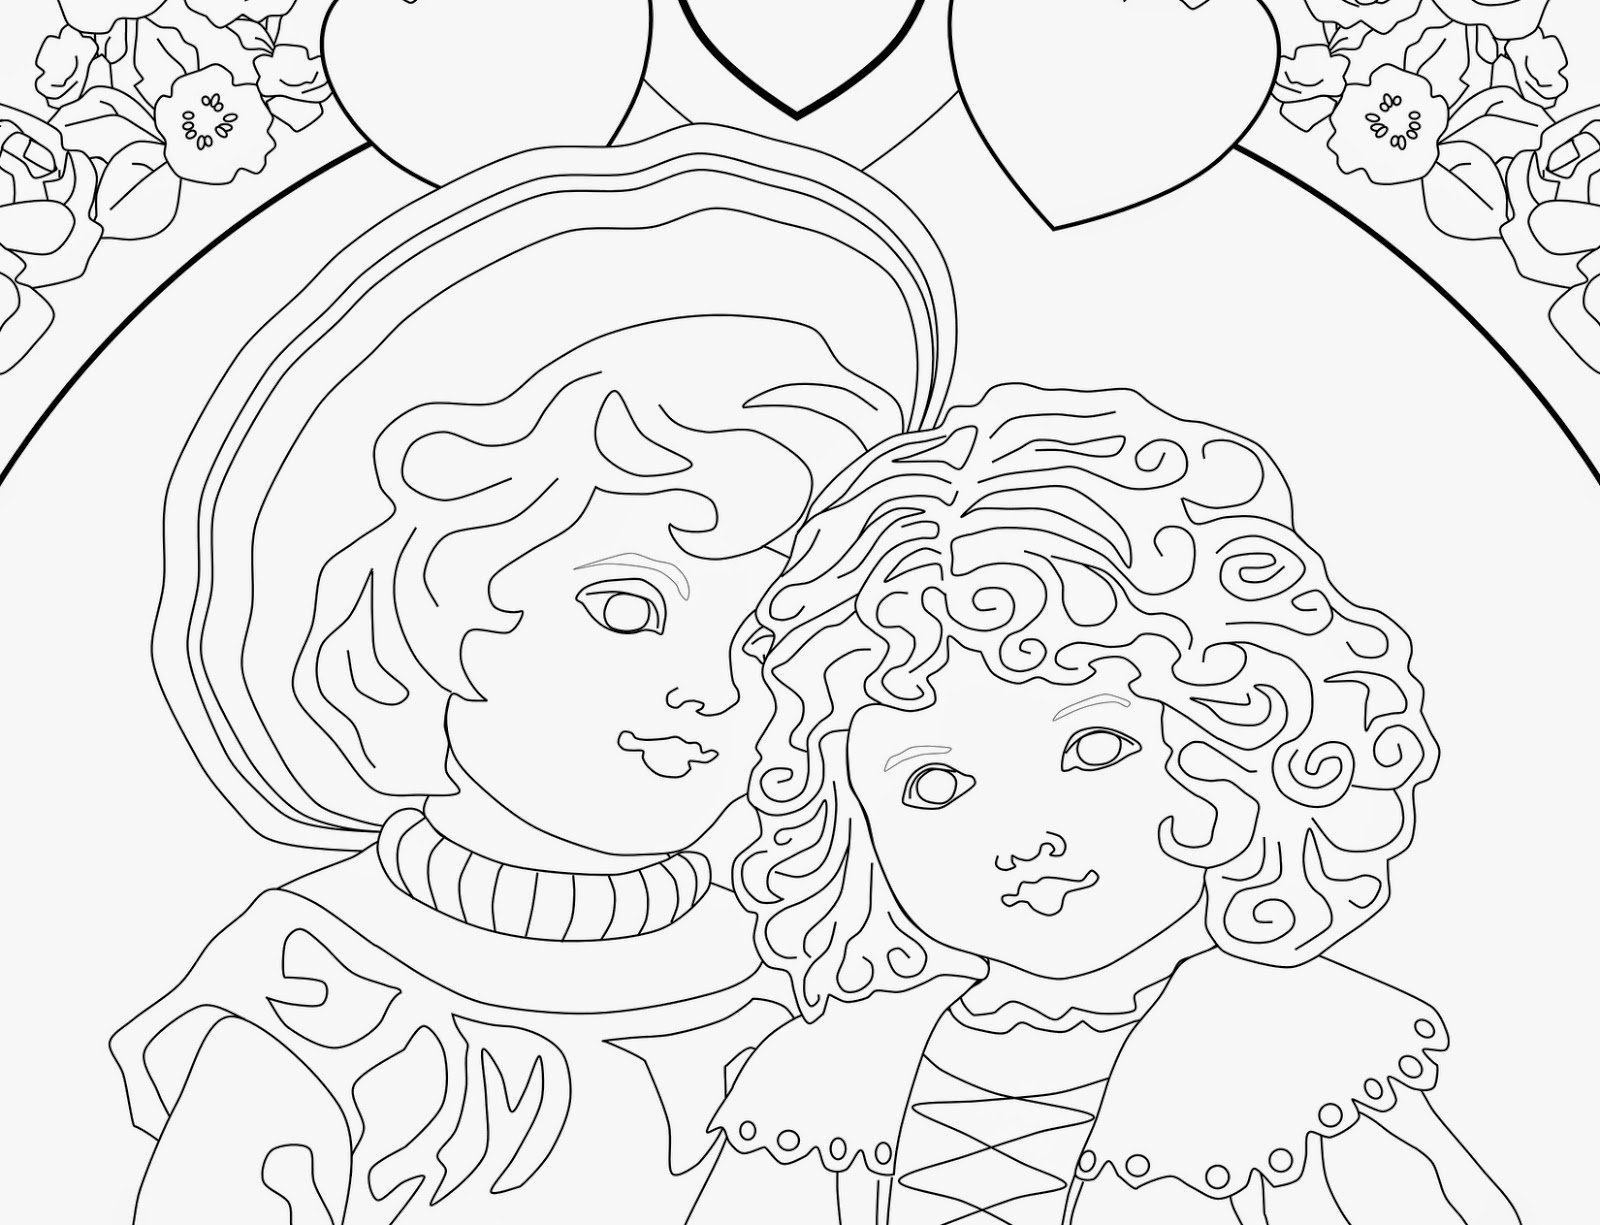 difficult coloring pages for teenagers drawing pages for teenagers at getdrawings free download coloring for pages difficult teenagers